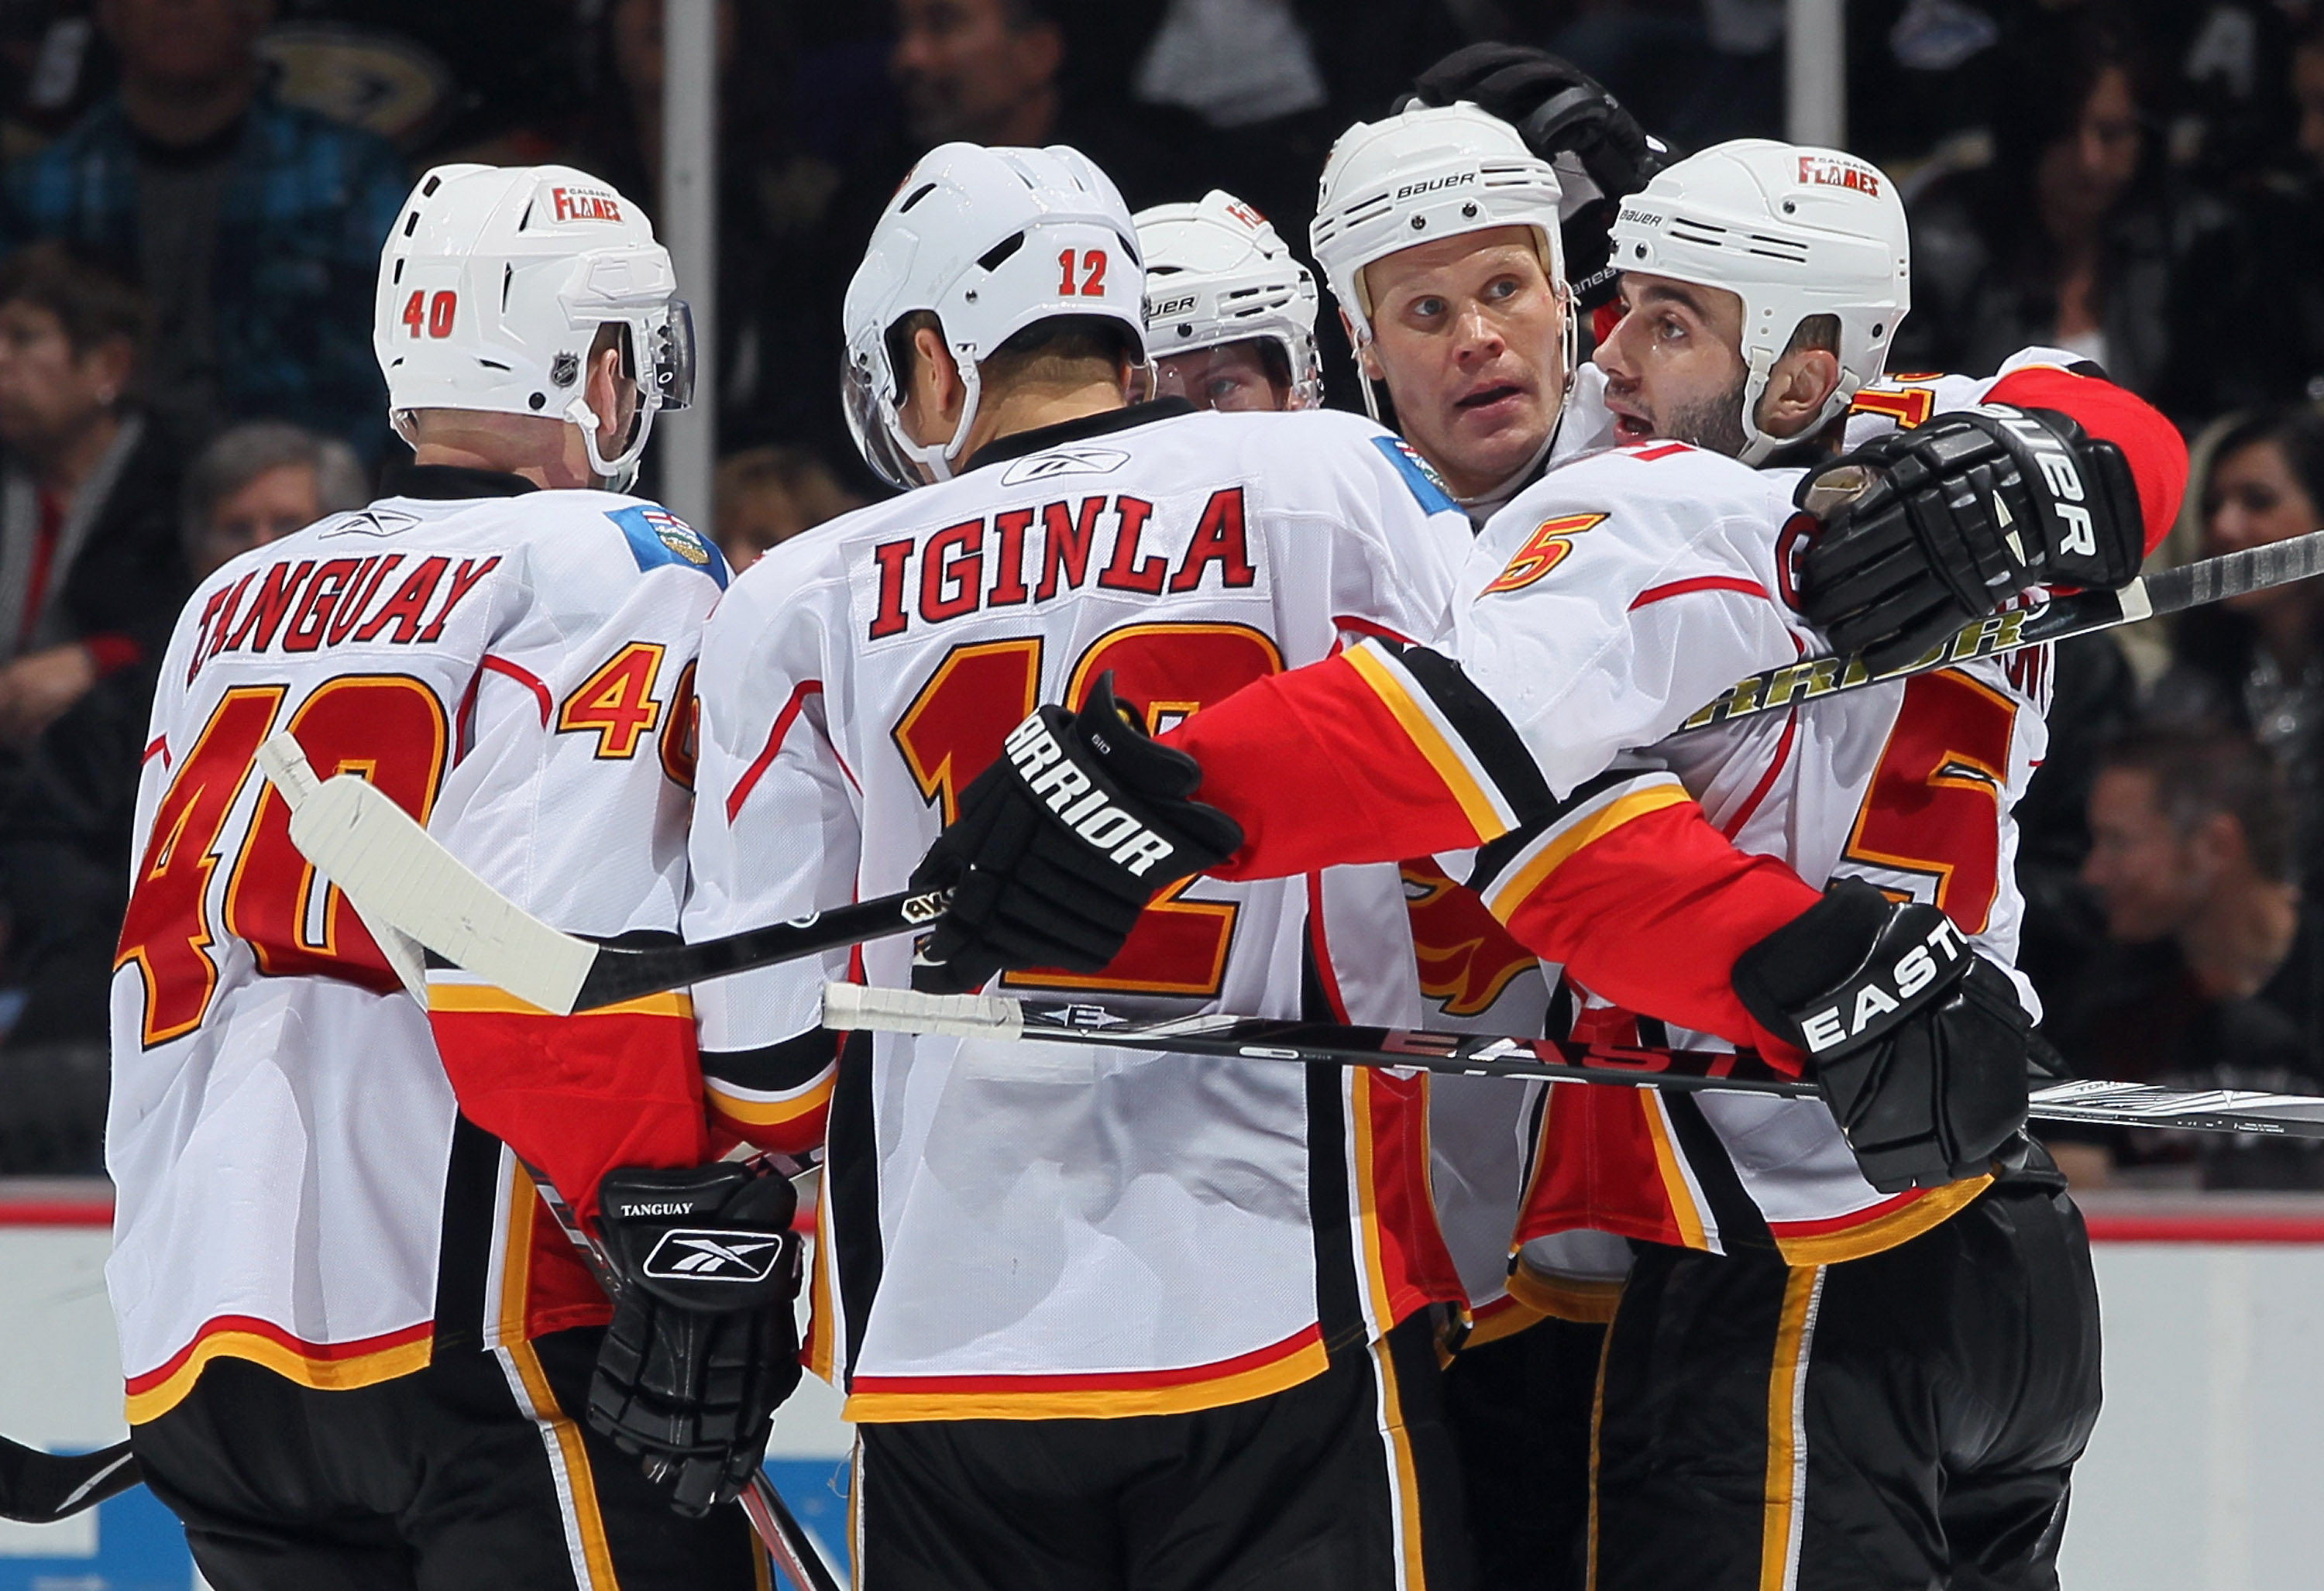 ANAHEIM, CA - DECEMBER 10:  (L-R) Alex Tanguay, #40, Jerome Iginla #12, Olli Jokinen #13 and Mark Giordano #5 of the Calgary Flames celebrate Jokinen's goal against the Anaheim Ducks in the third period at the Honda Center on December 10, 2010 in Anaheim,